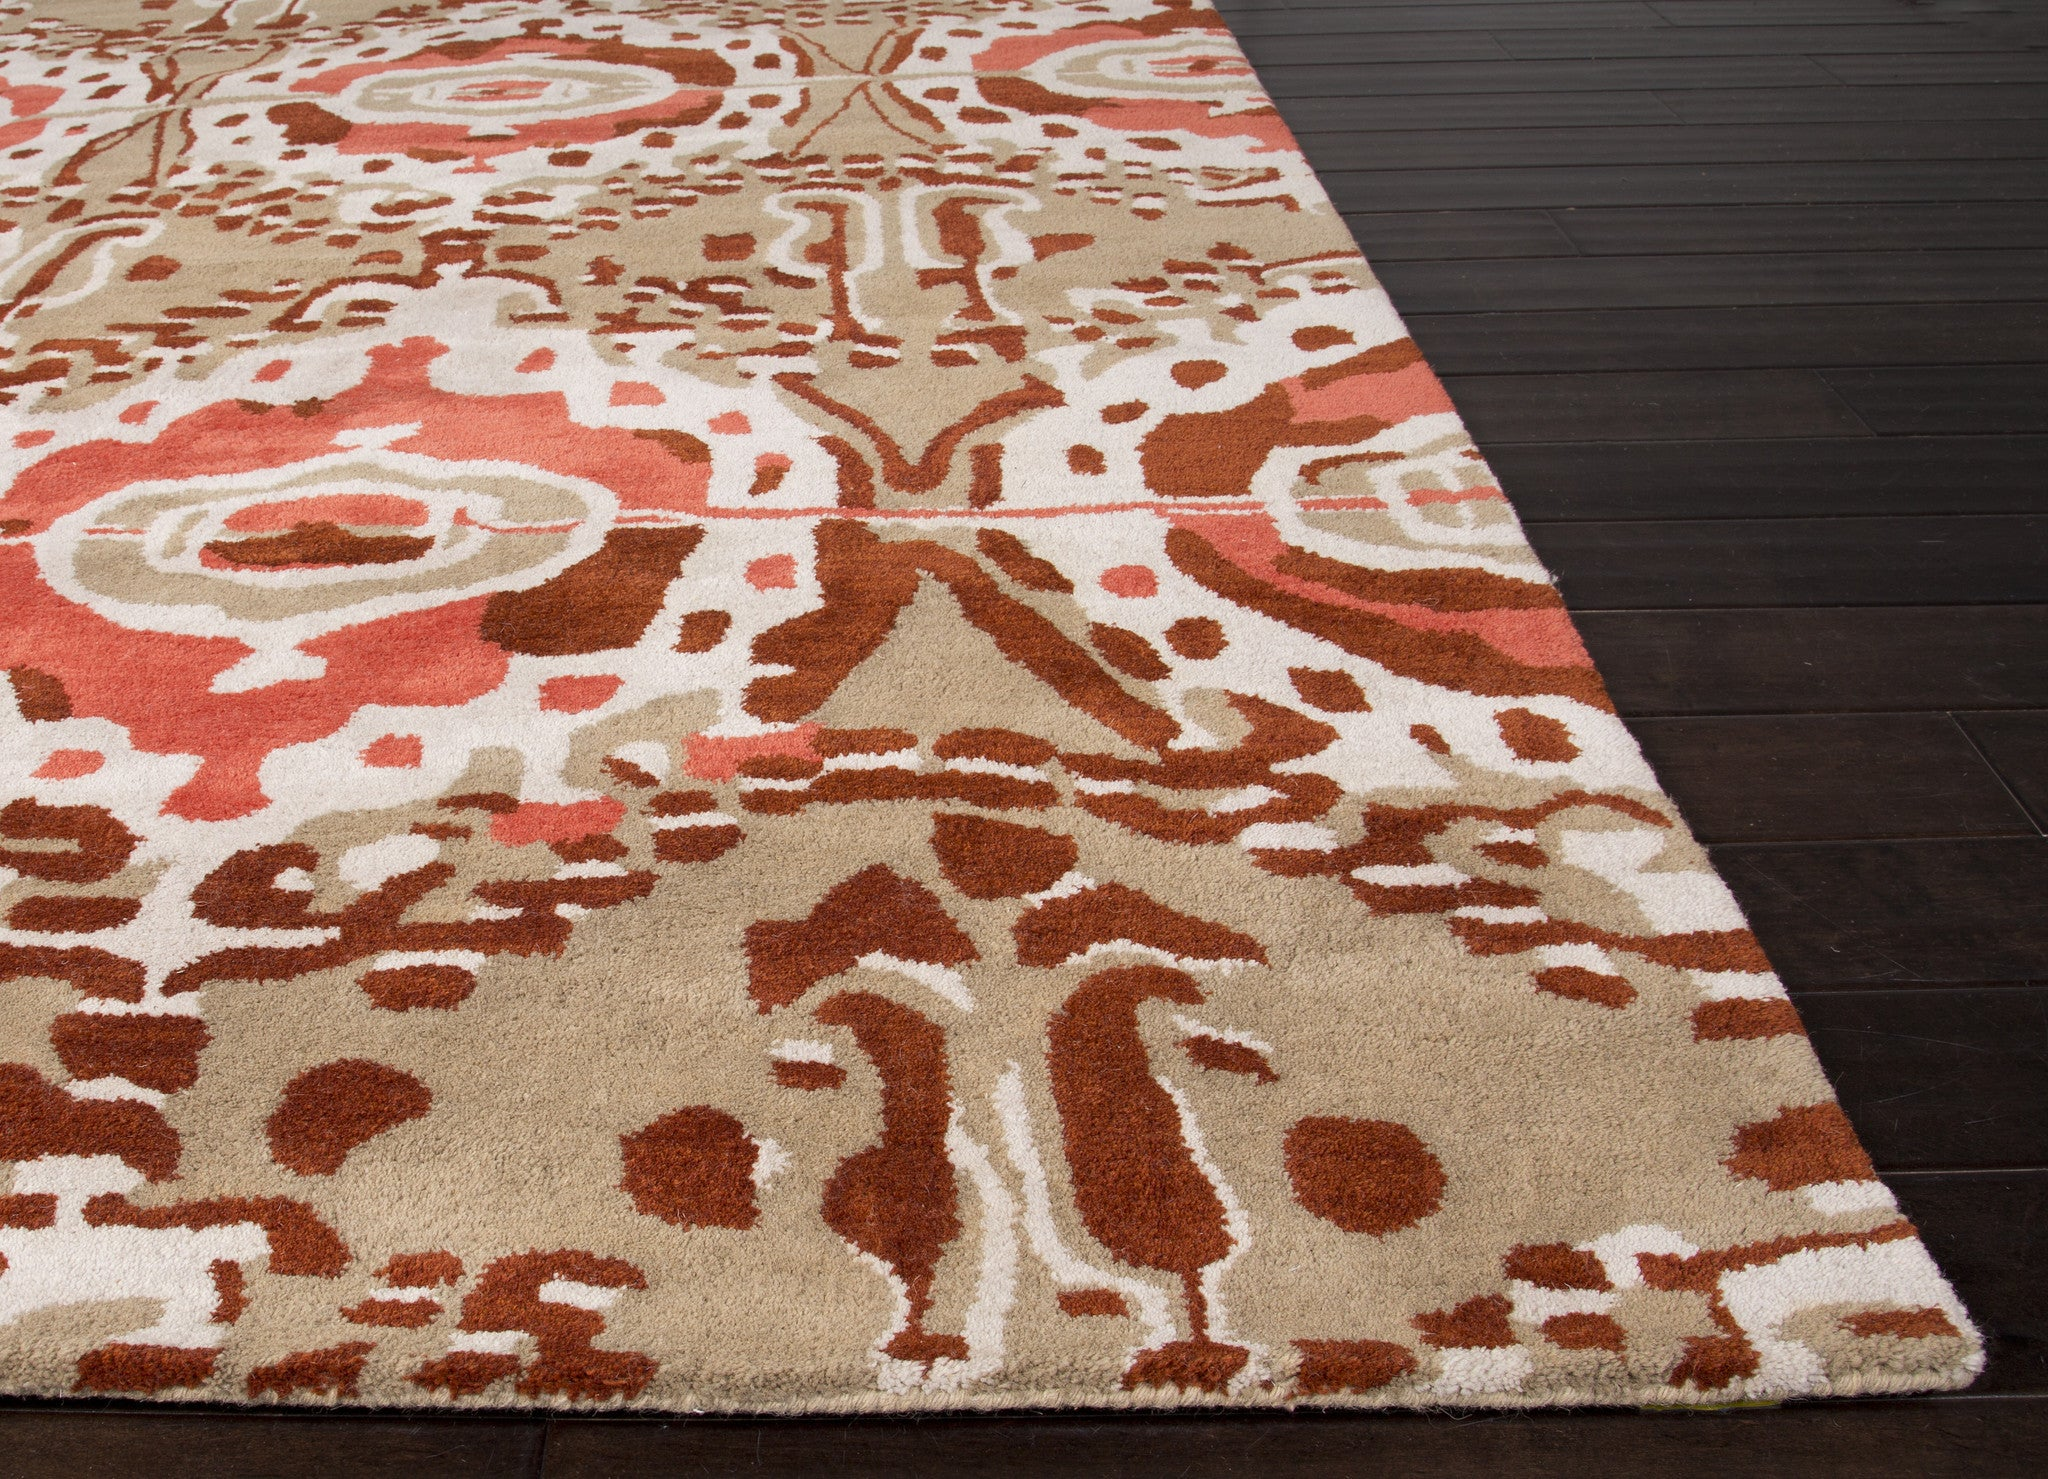 Jaipur rugs modern tribal pattern red taupe wool area rug for Red area rugs contemporary